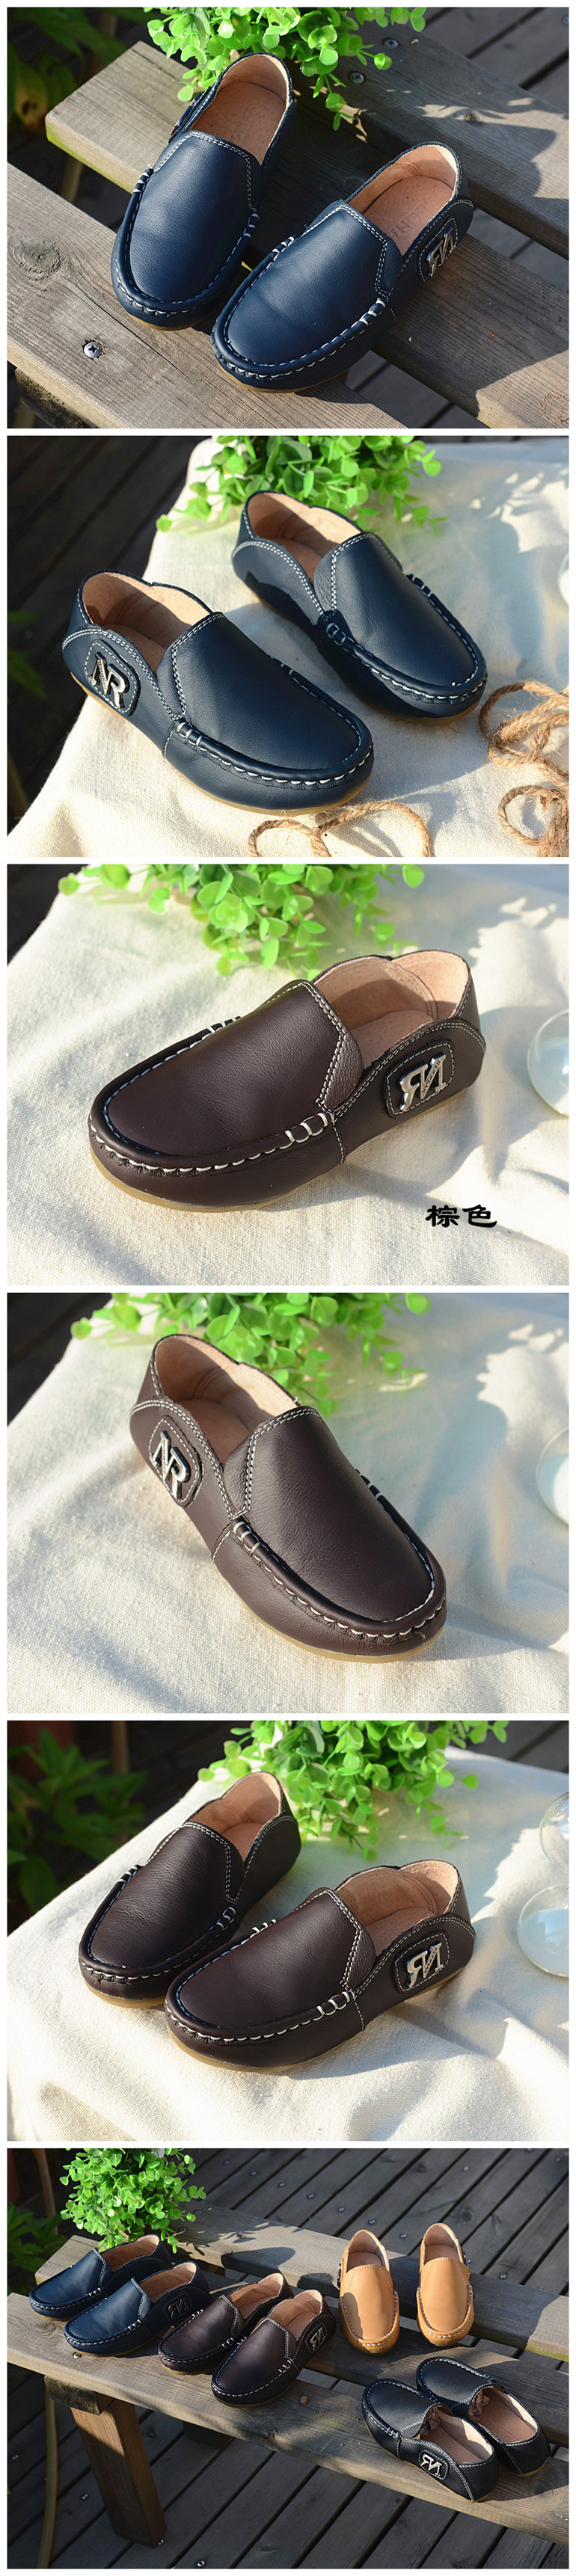 17 Kids new boys children's casual shoes baby boy high quality shoes for big boys kid comfort fashion sneakers shoes 2